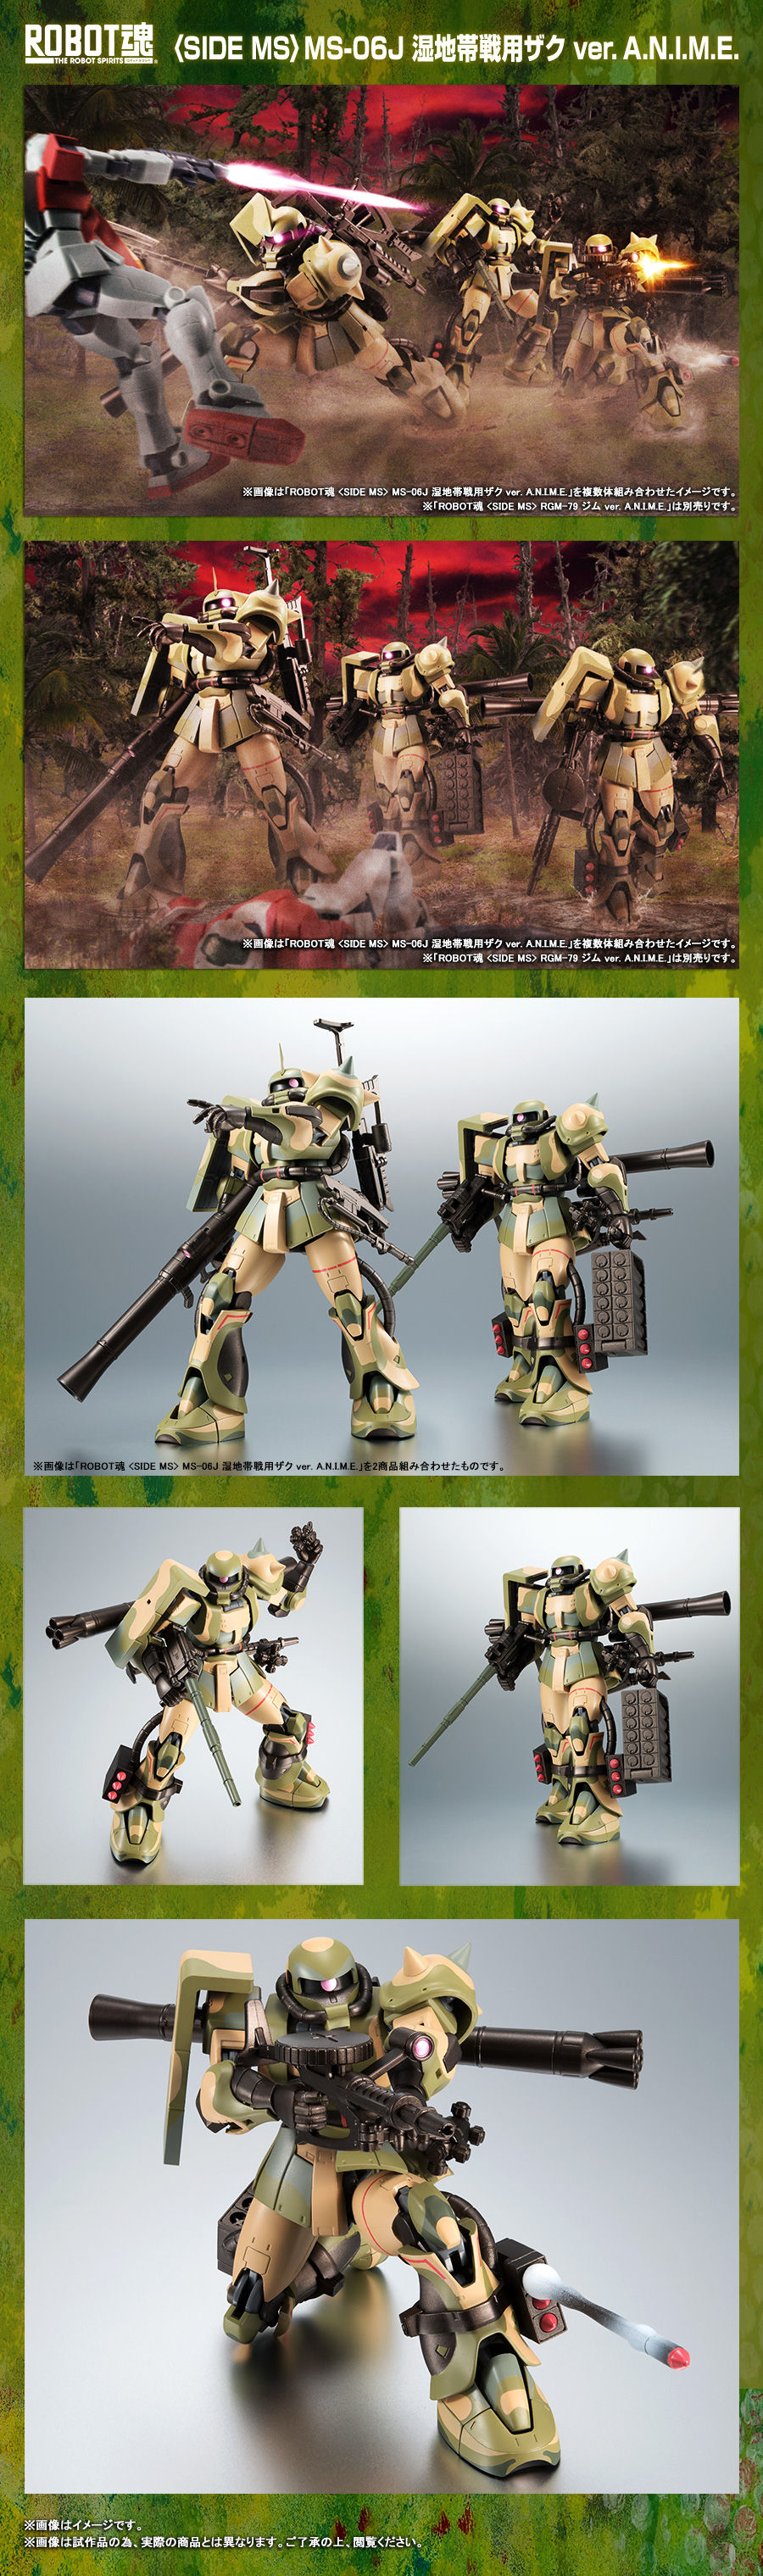 Gundam - Metal Robot Side MS (Bandai) - Page 5 69eYl3Qc_o